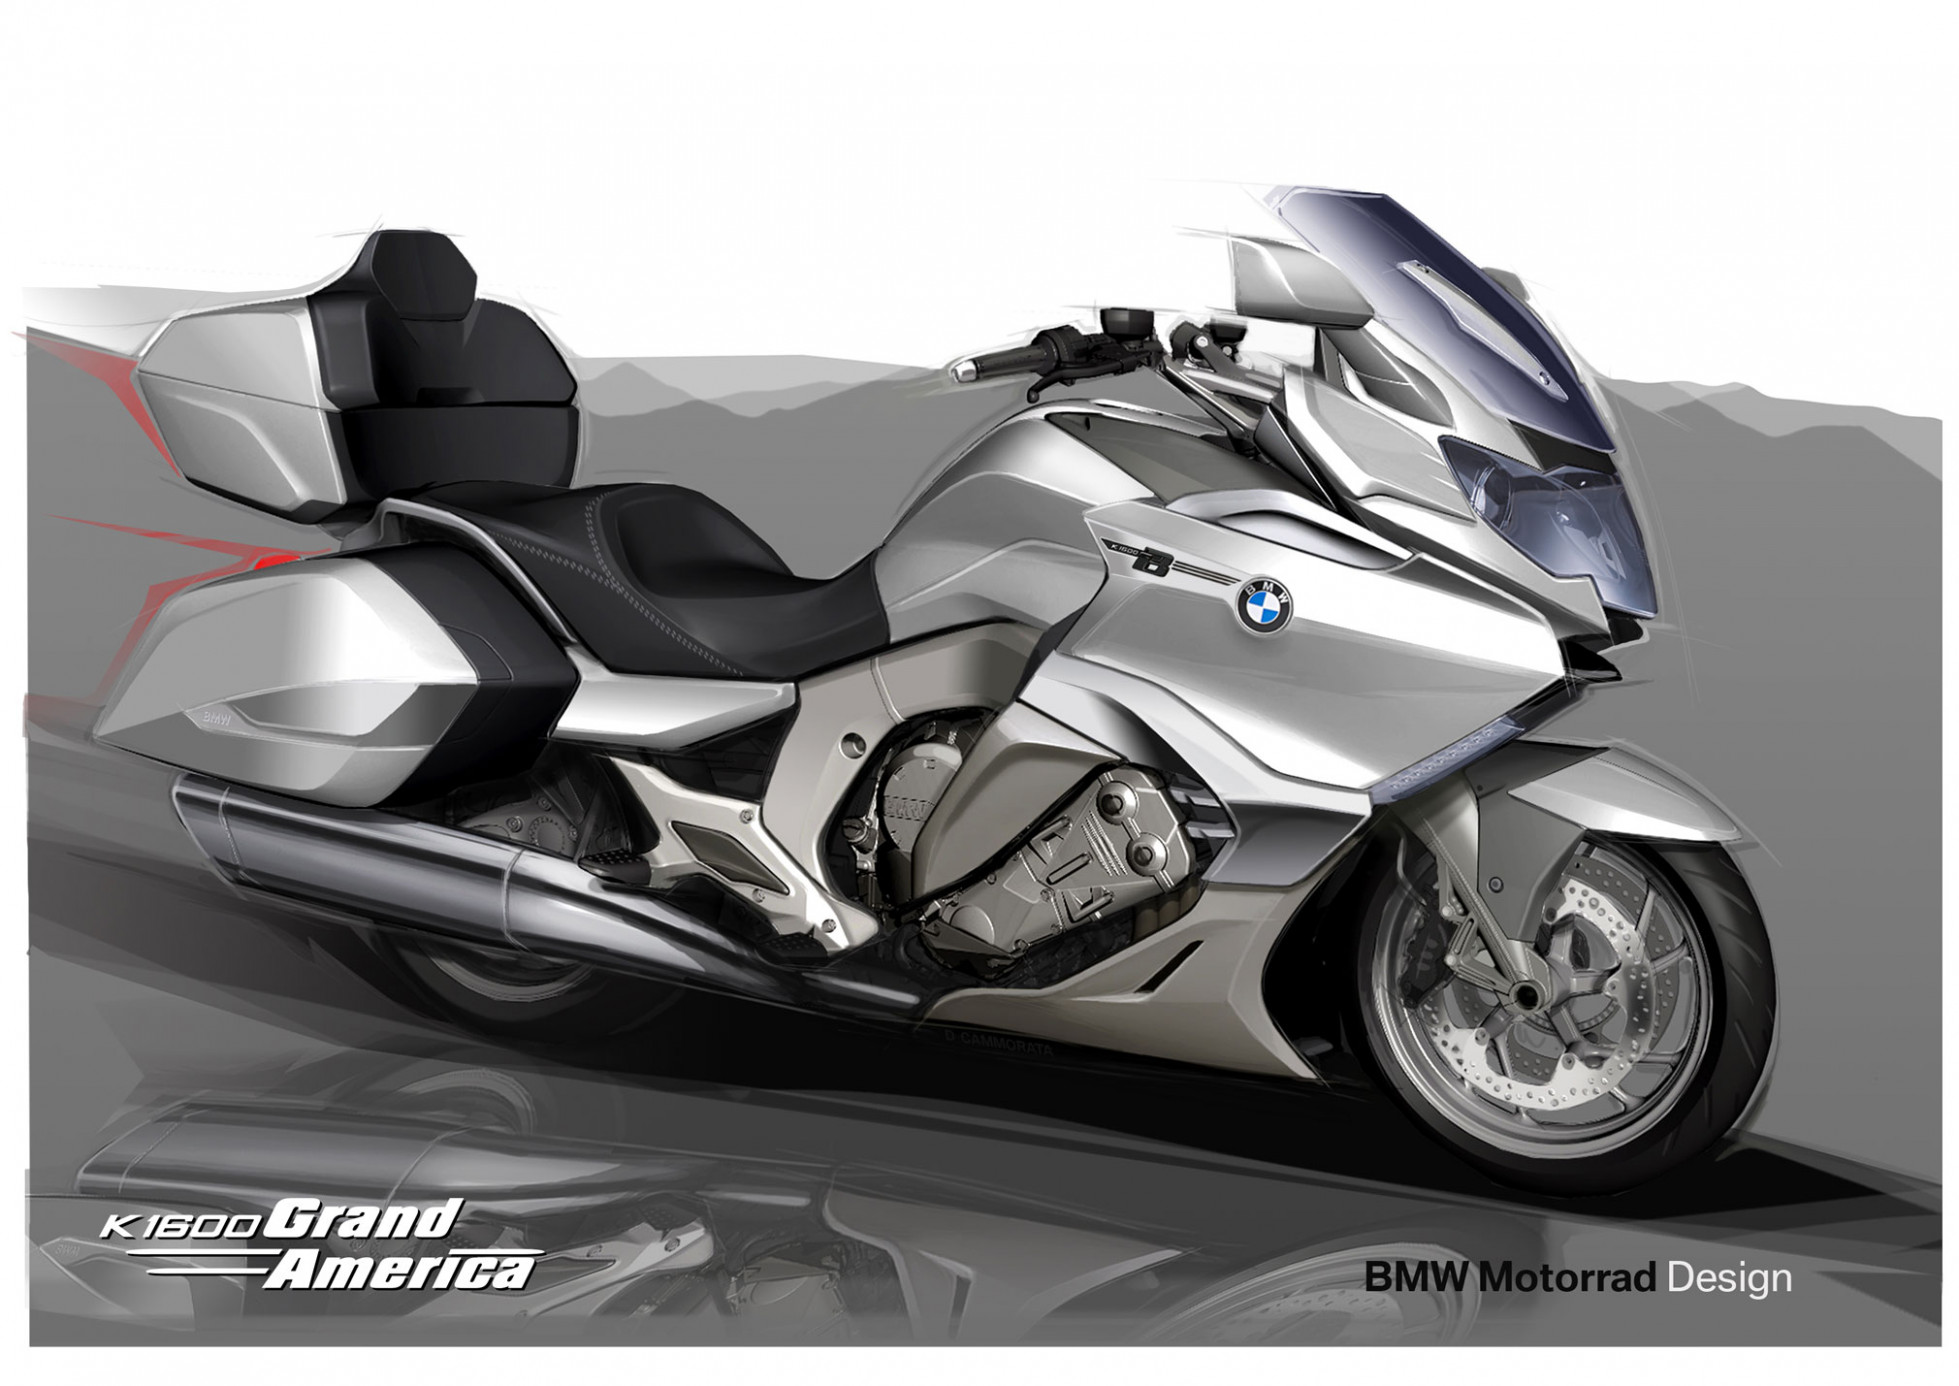 7 BMW K7 Grand America Guide • Total Motorcycle - 2020 bmw grand america